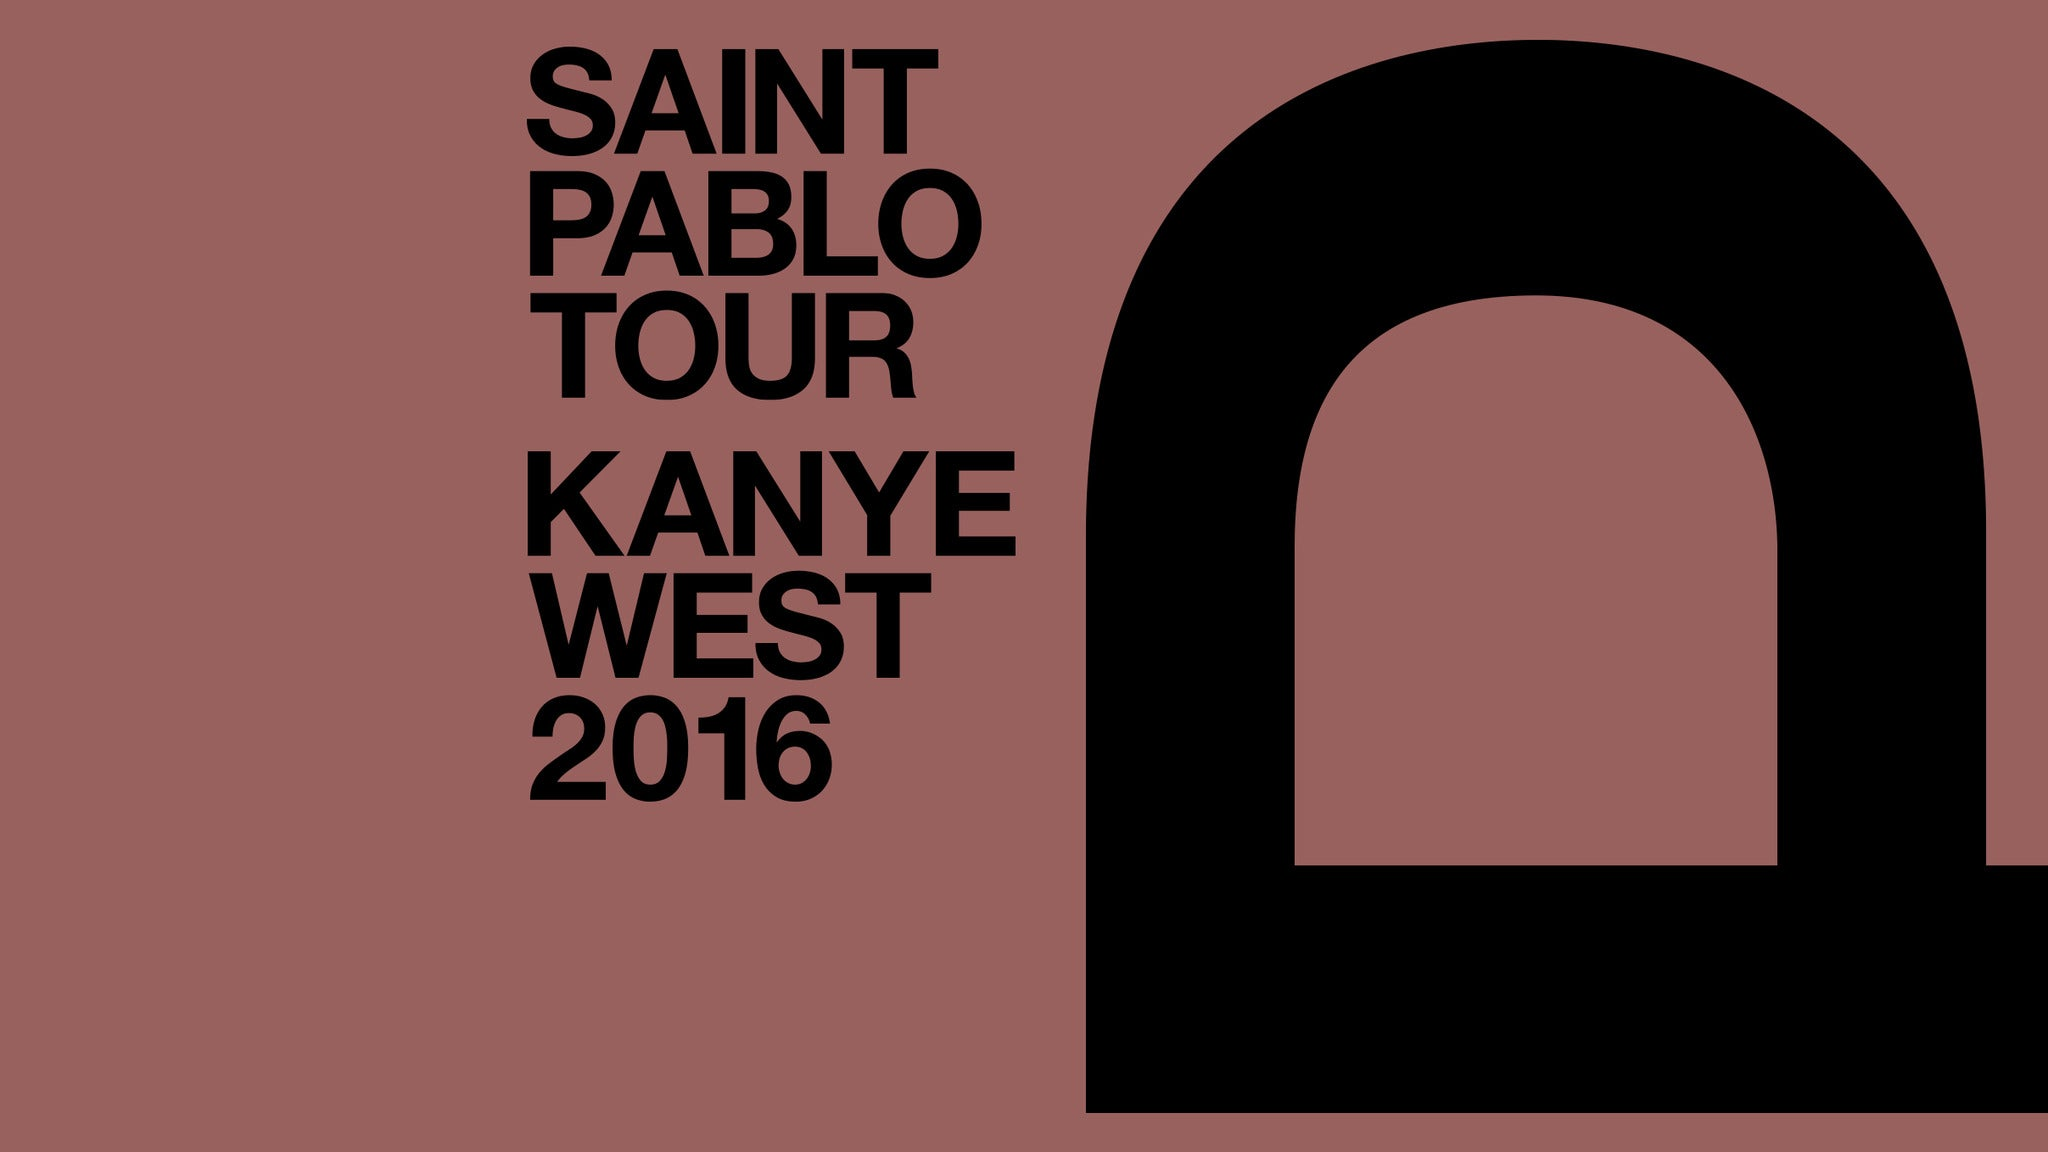 Kanye West: The Saint Pablo Tour at The Forum - Inglewood, CA 90305